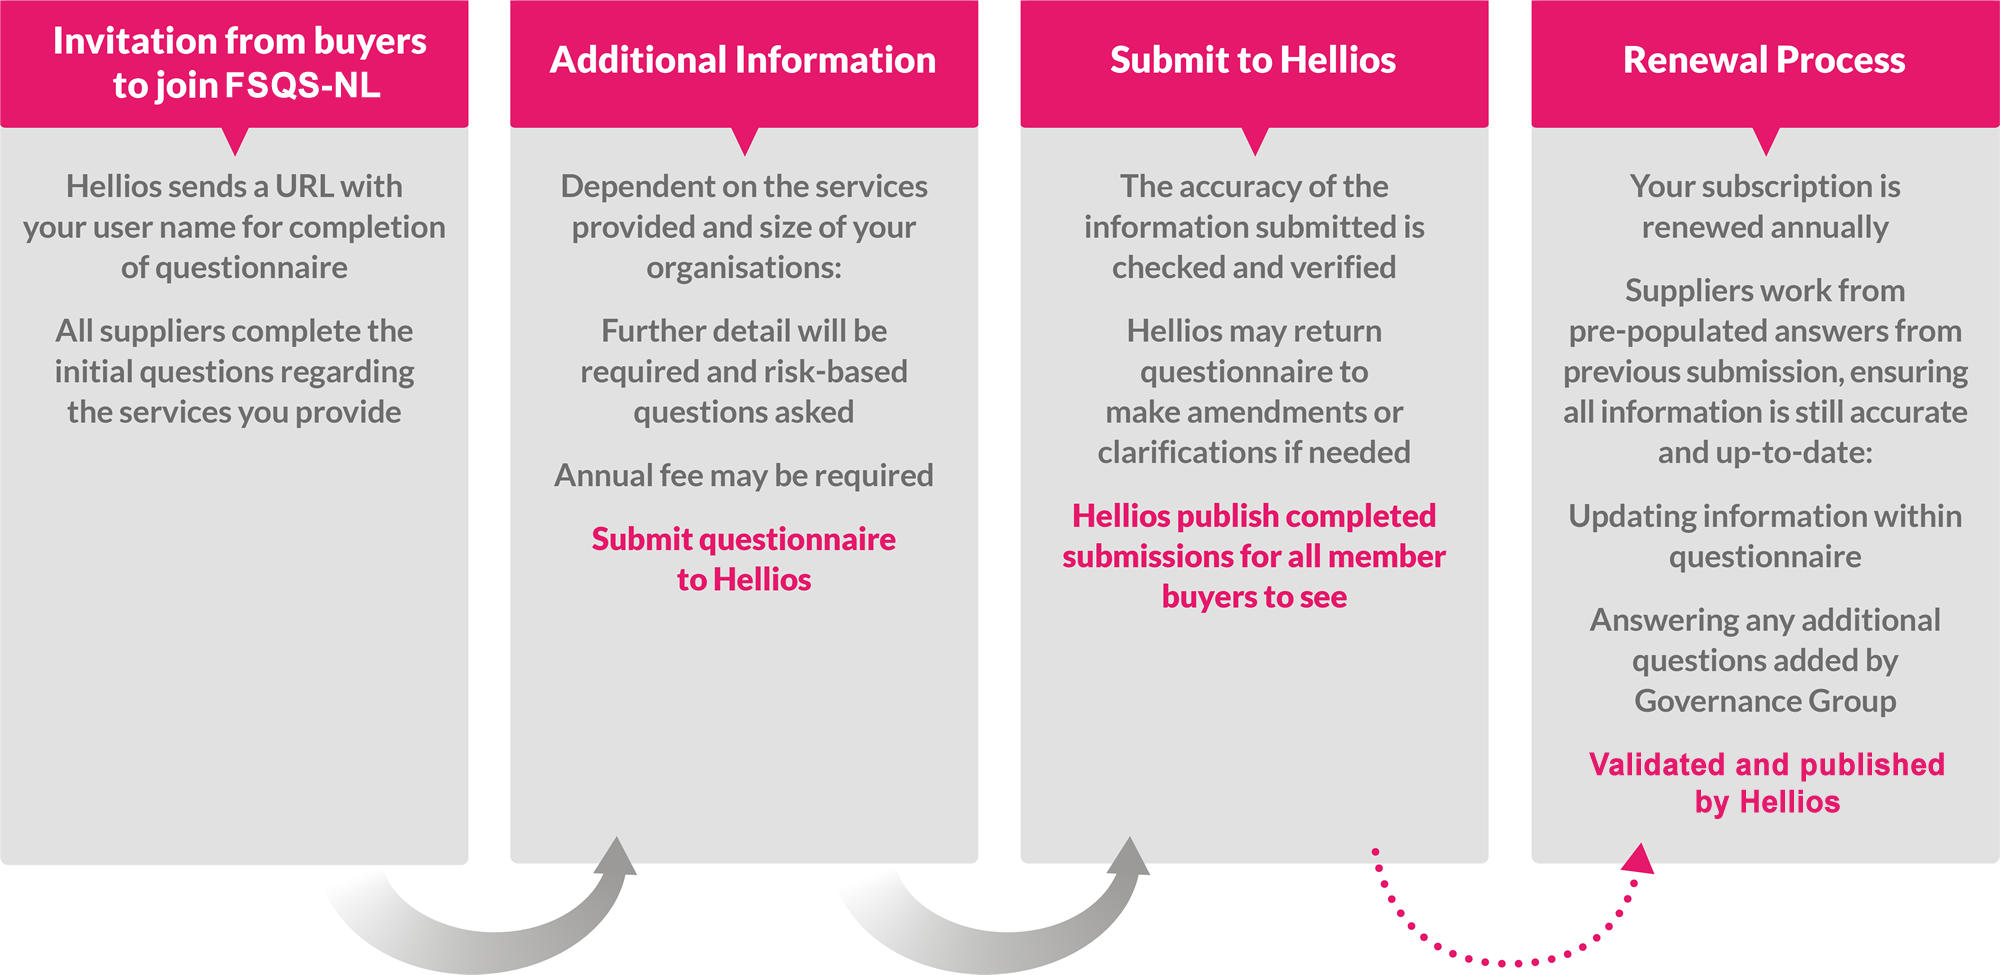 Hellios Supplier Process - click to view 'How it works'